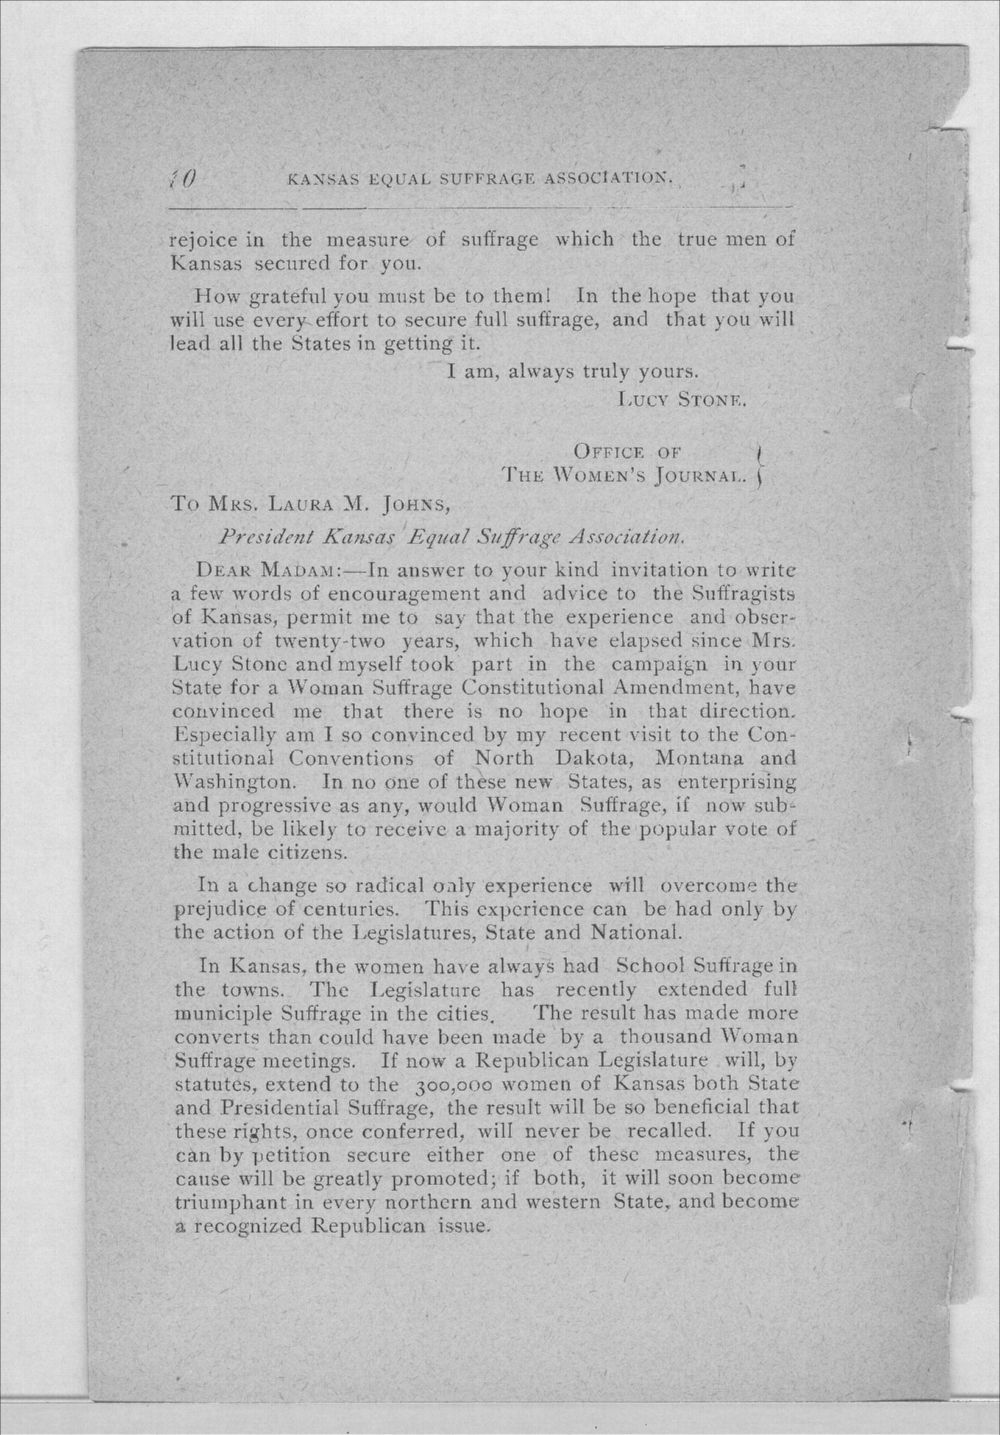 Minutes of the Kansas Equal Suffrage Association at the sixth annual meeting in 1889 - 10